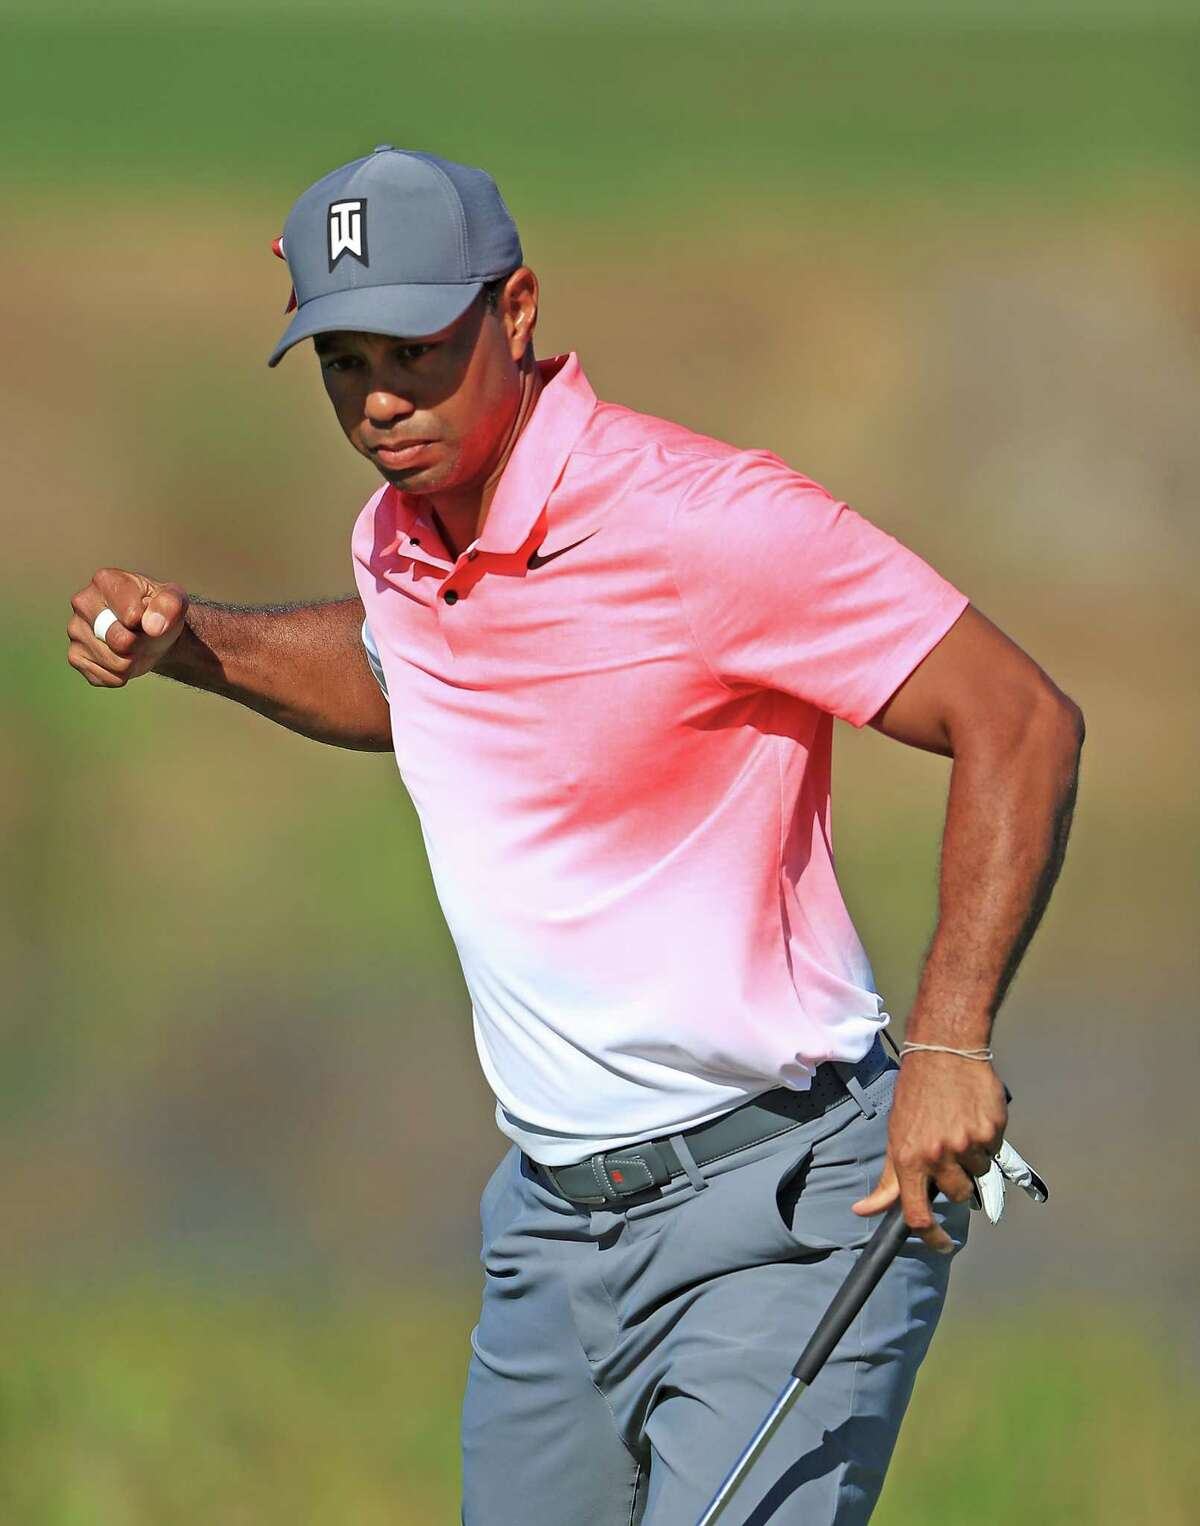 PALM BEACH GARDENS, FL - FEBRUARY 23: Tiger Woods reacts to birdie putt on the 11th hole during the second round of The Honda Classic at PGA National Resort and Spa on February 23, 2018 in Palm Beach Gardens, Florida. (Photo by Sam Greenwood/Getty Images)